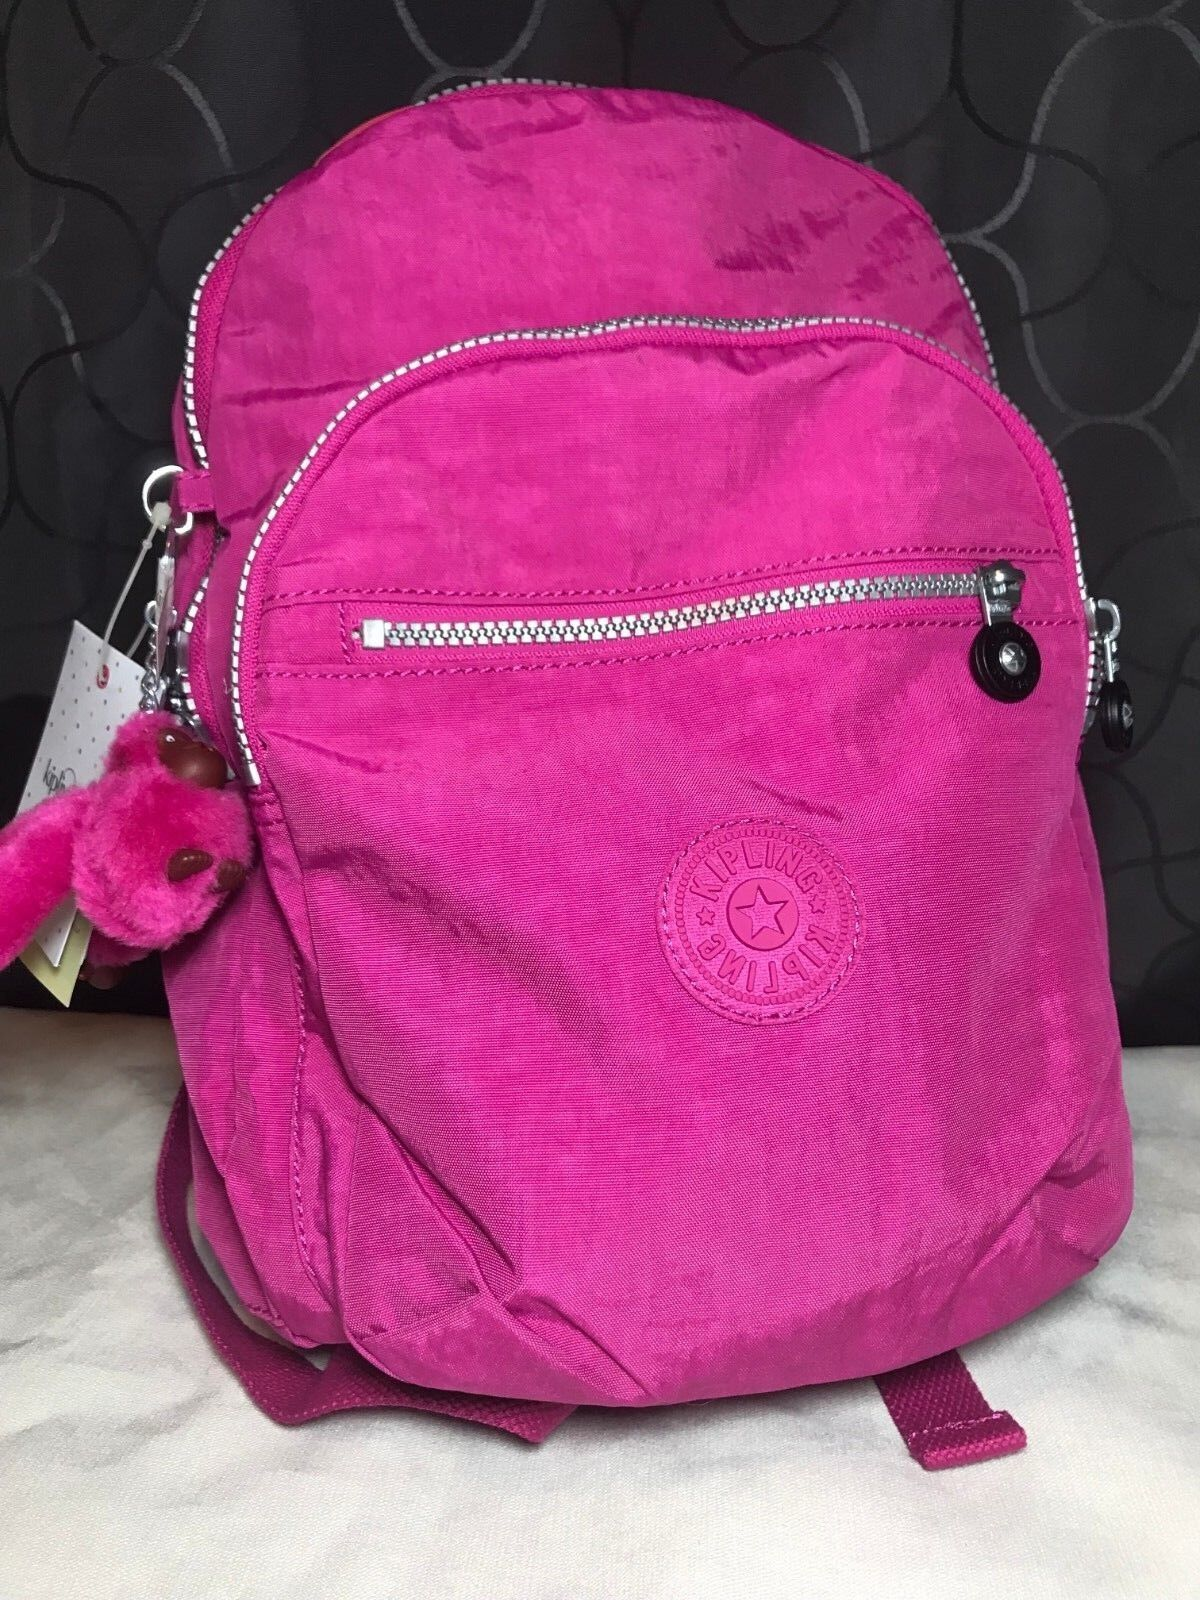 Kipling Seoul GO S Very Berry Small / Medium Backpack Travel